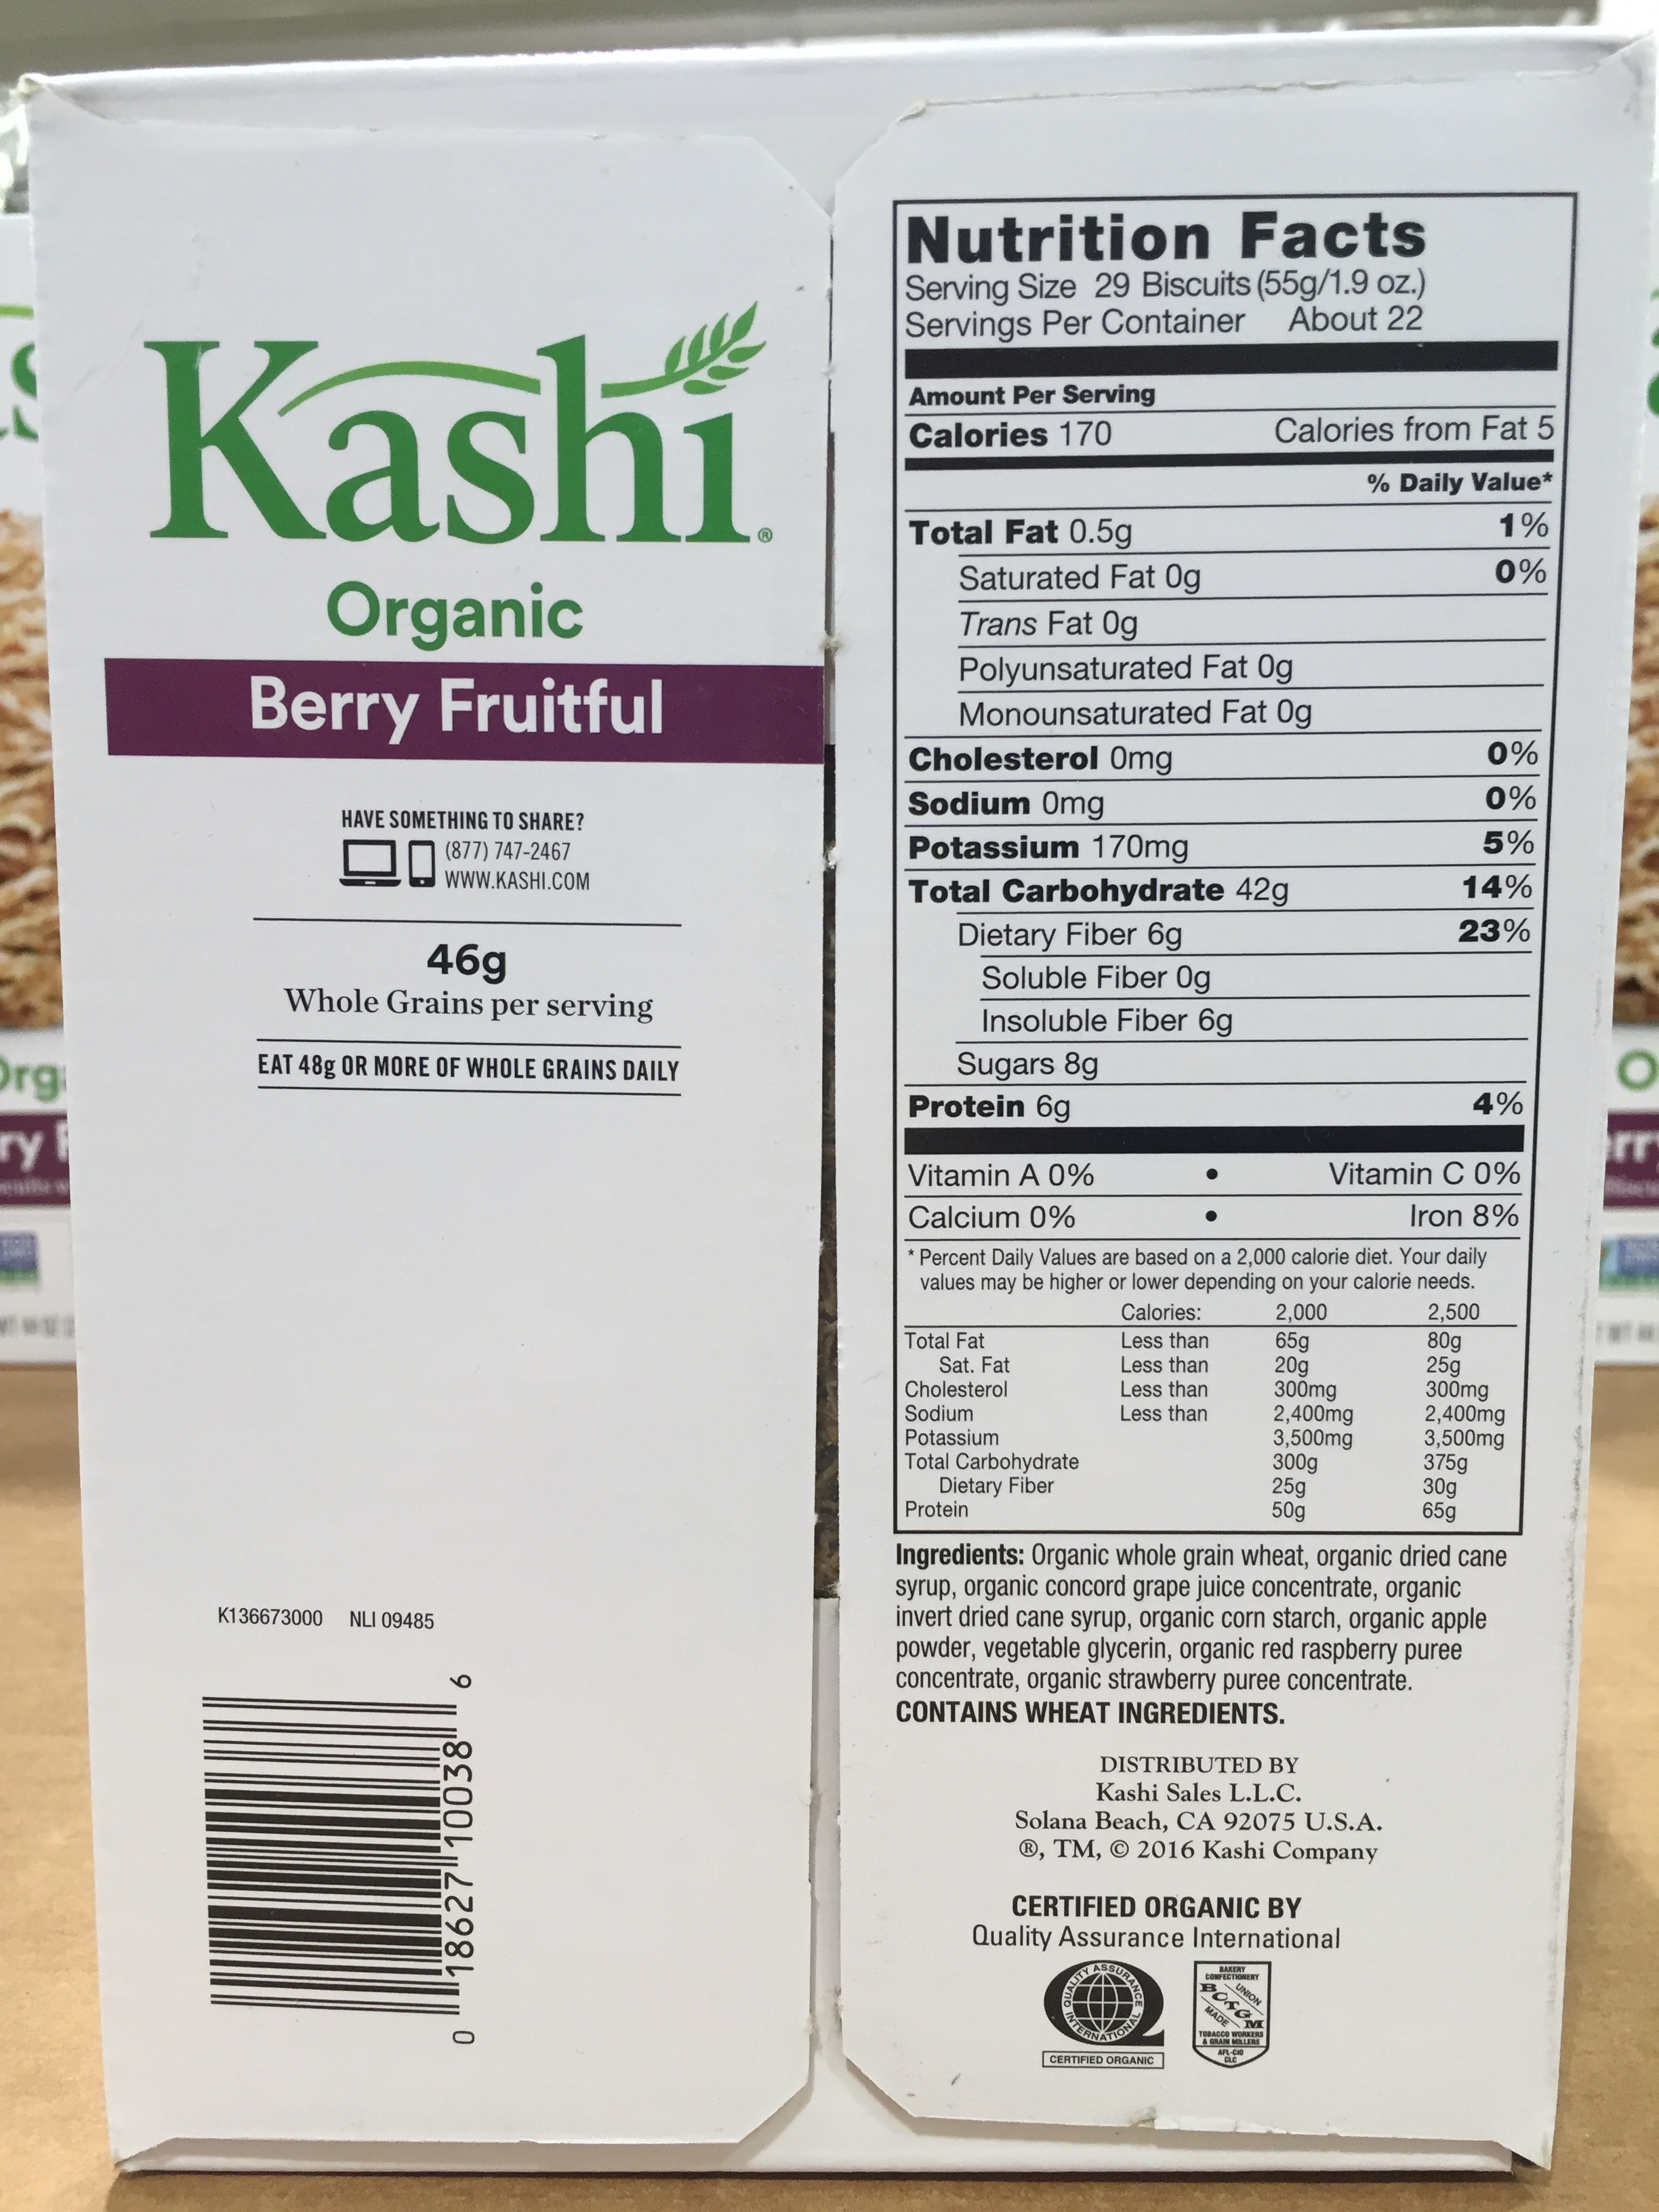 Kashi Organic Berry Fruitful Wheat Cereal Nutrition Facts